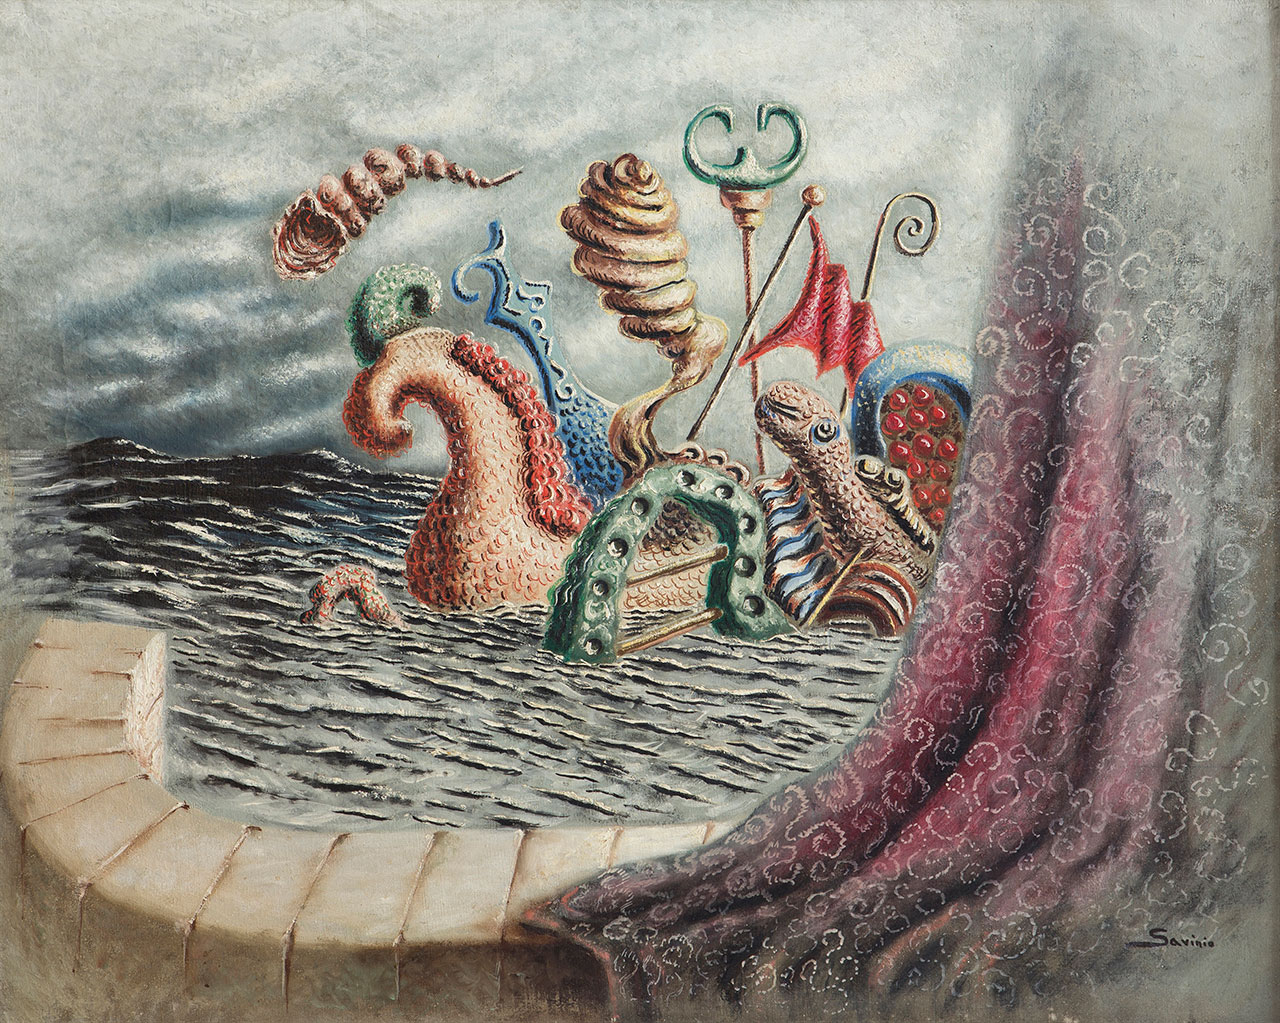 Alberto Savinio, Les Atlantes, 1931, oil on canvas 65 x 80 cm. Private collection. Courtesy ED Gallery, Piacenza. Photo Sergio Amici © Alberto Savinio by SIAE 2018.